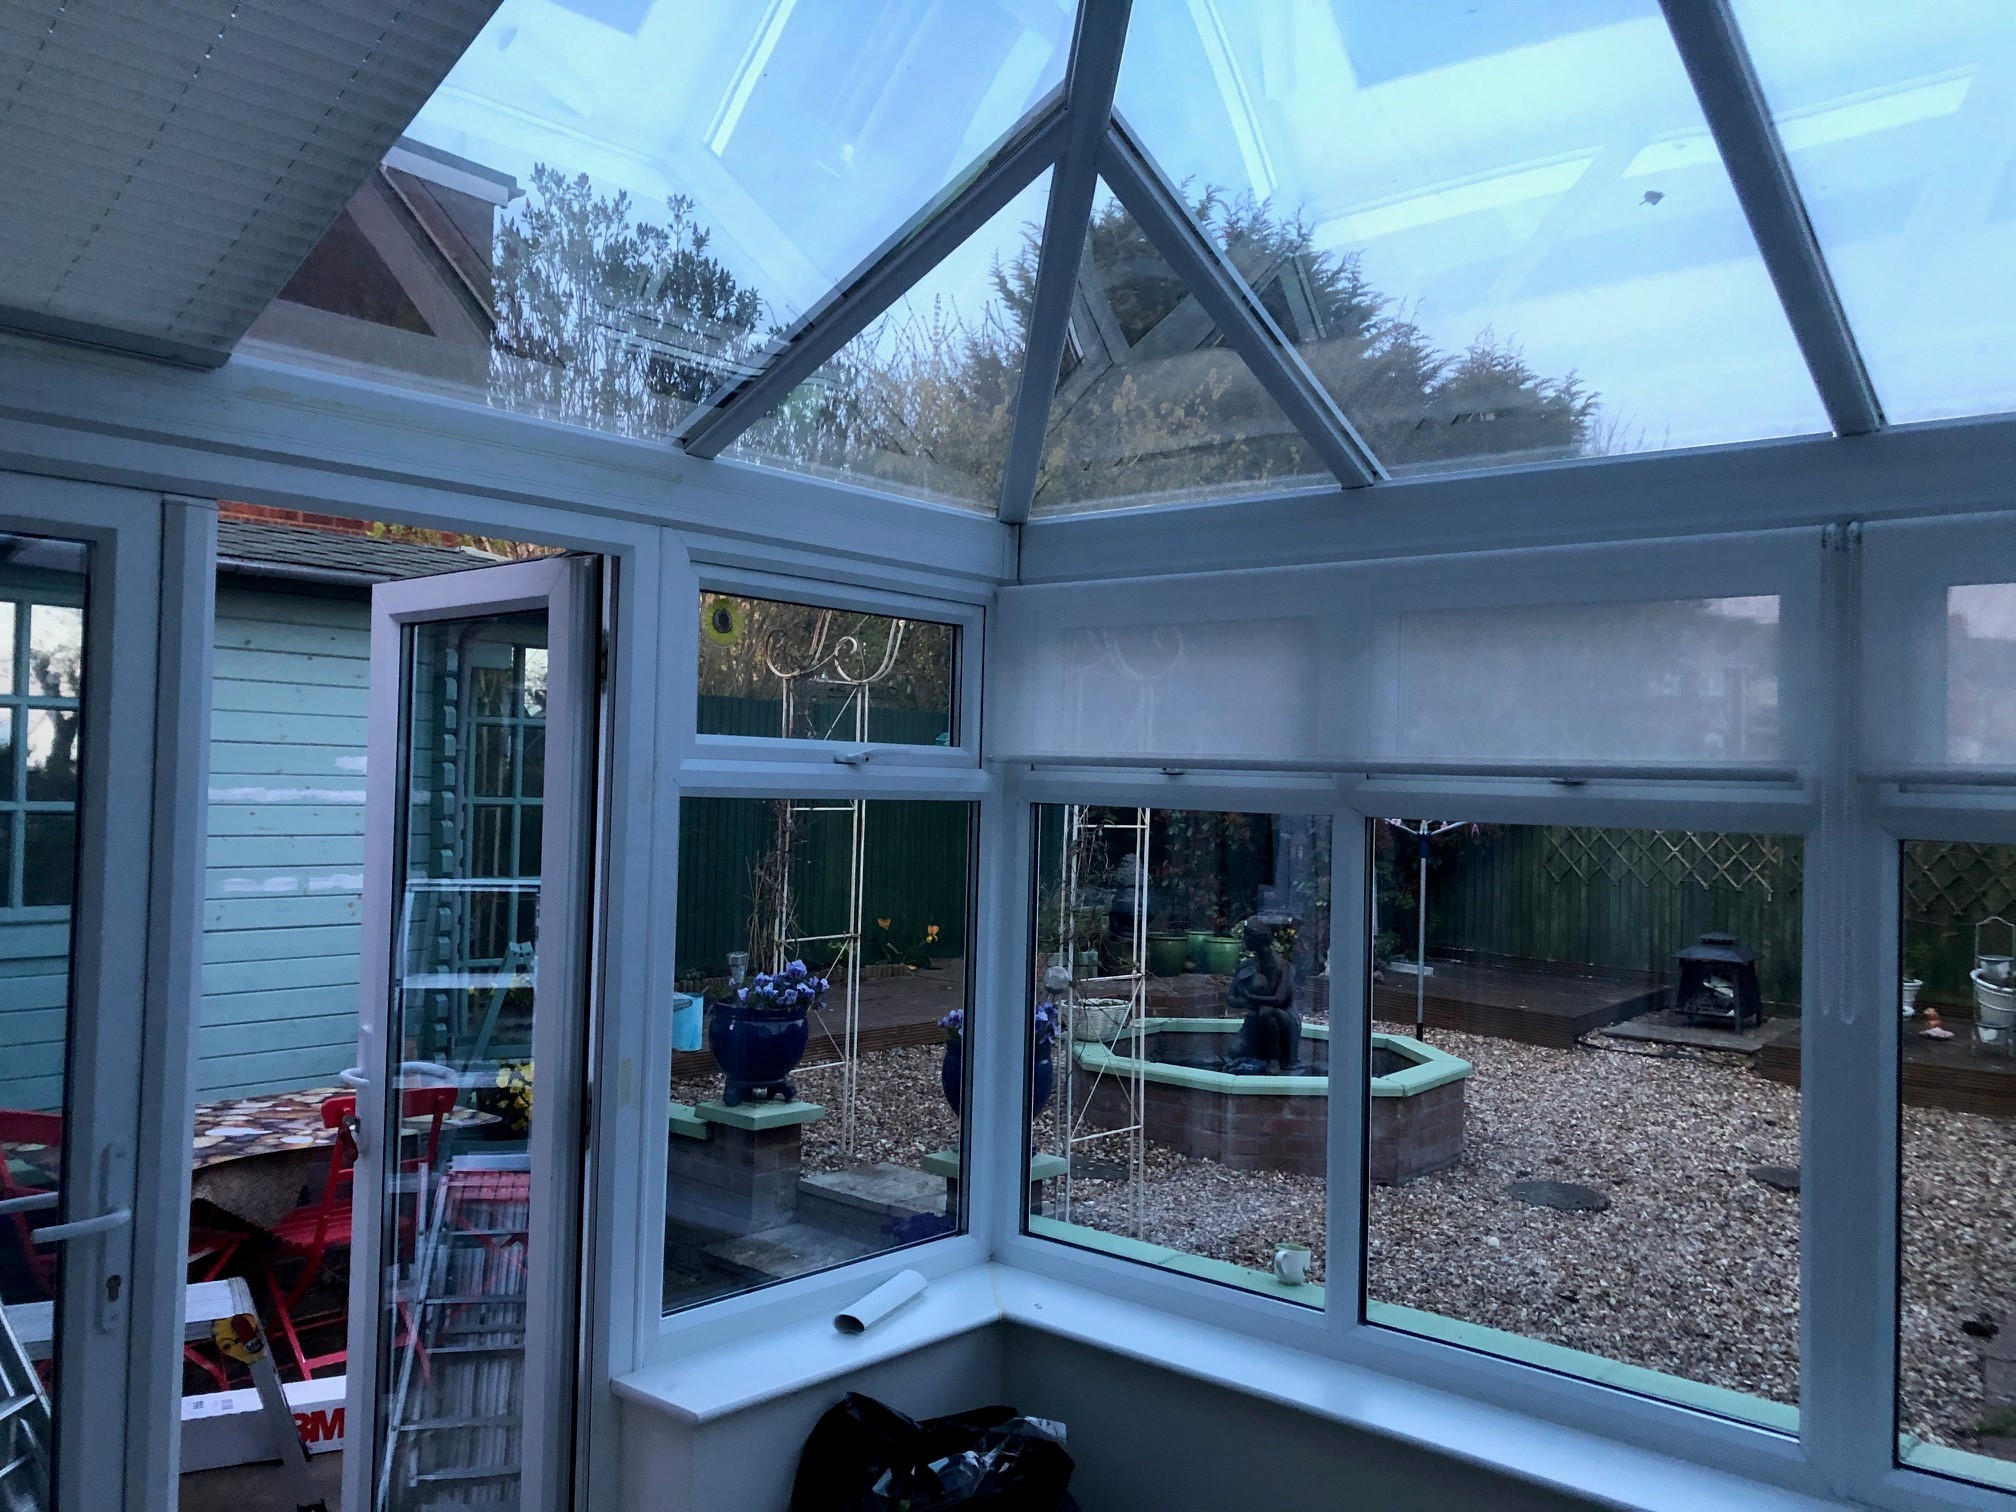 Interior view of conservatory solar window film: 3M Prestige 70 External.